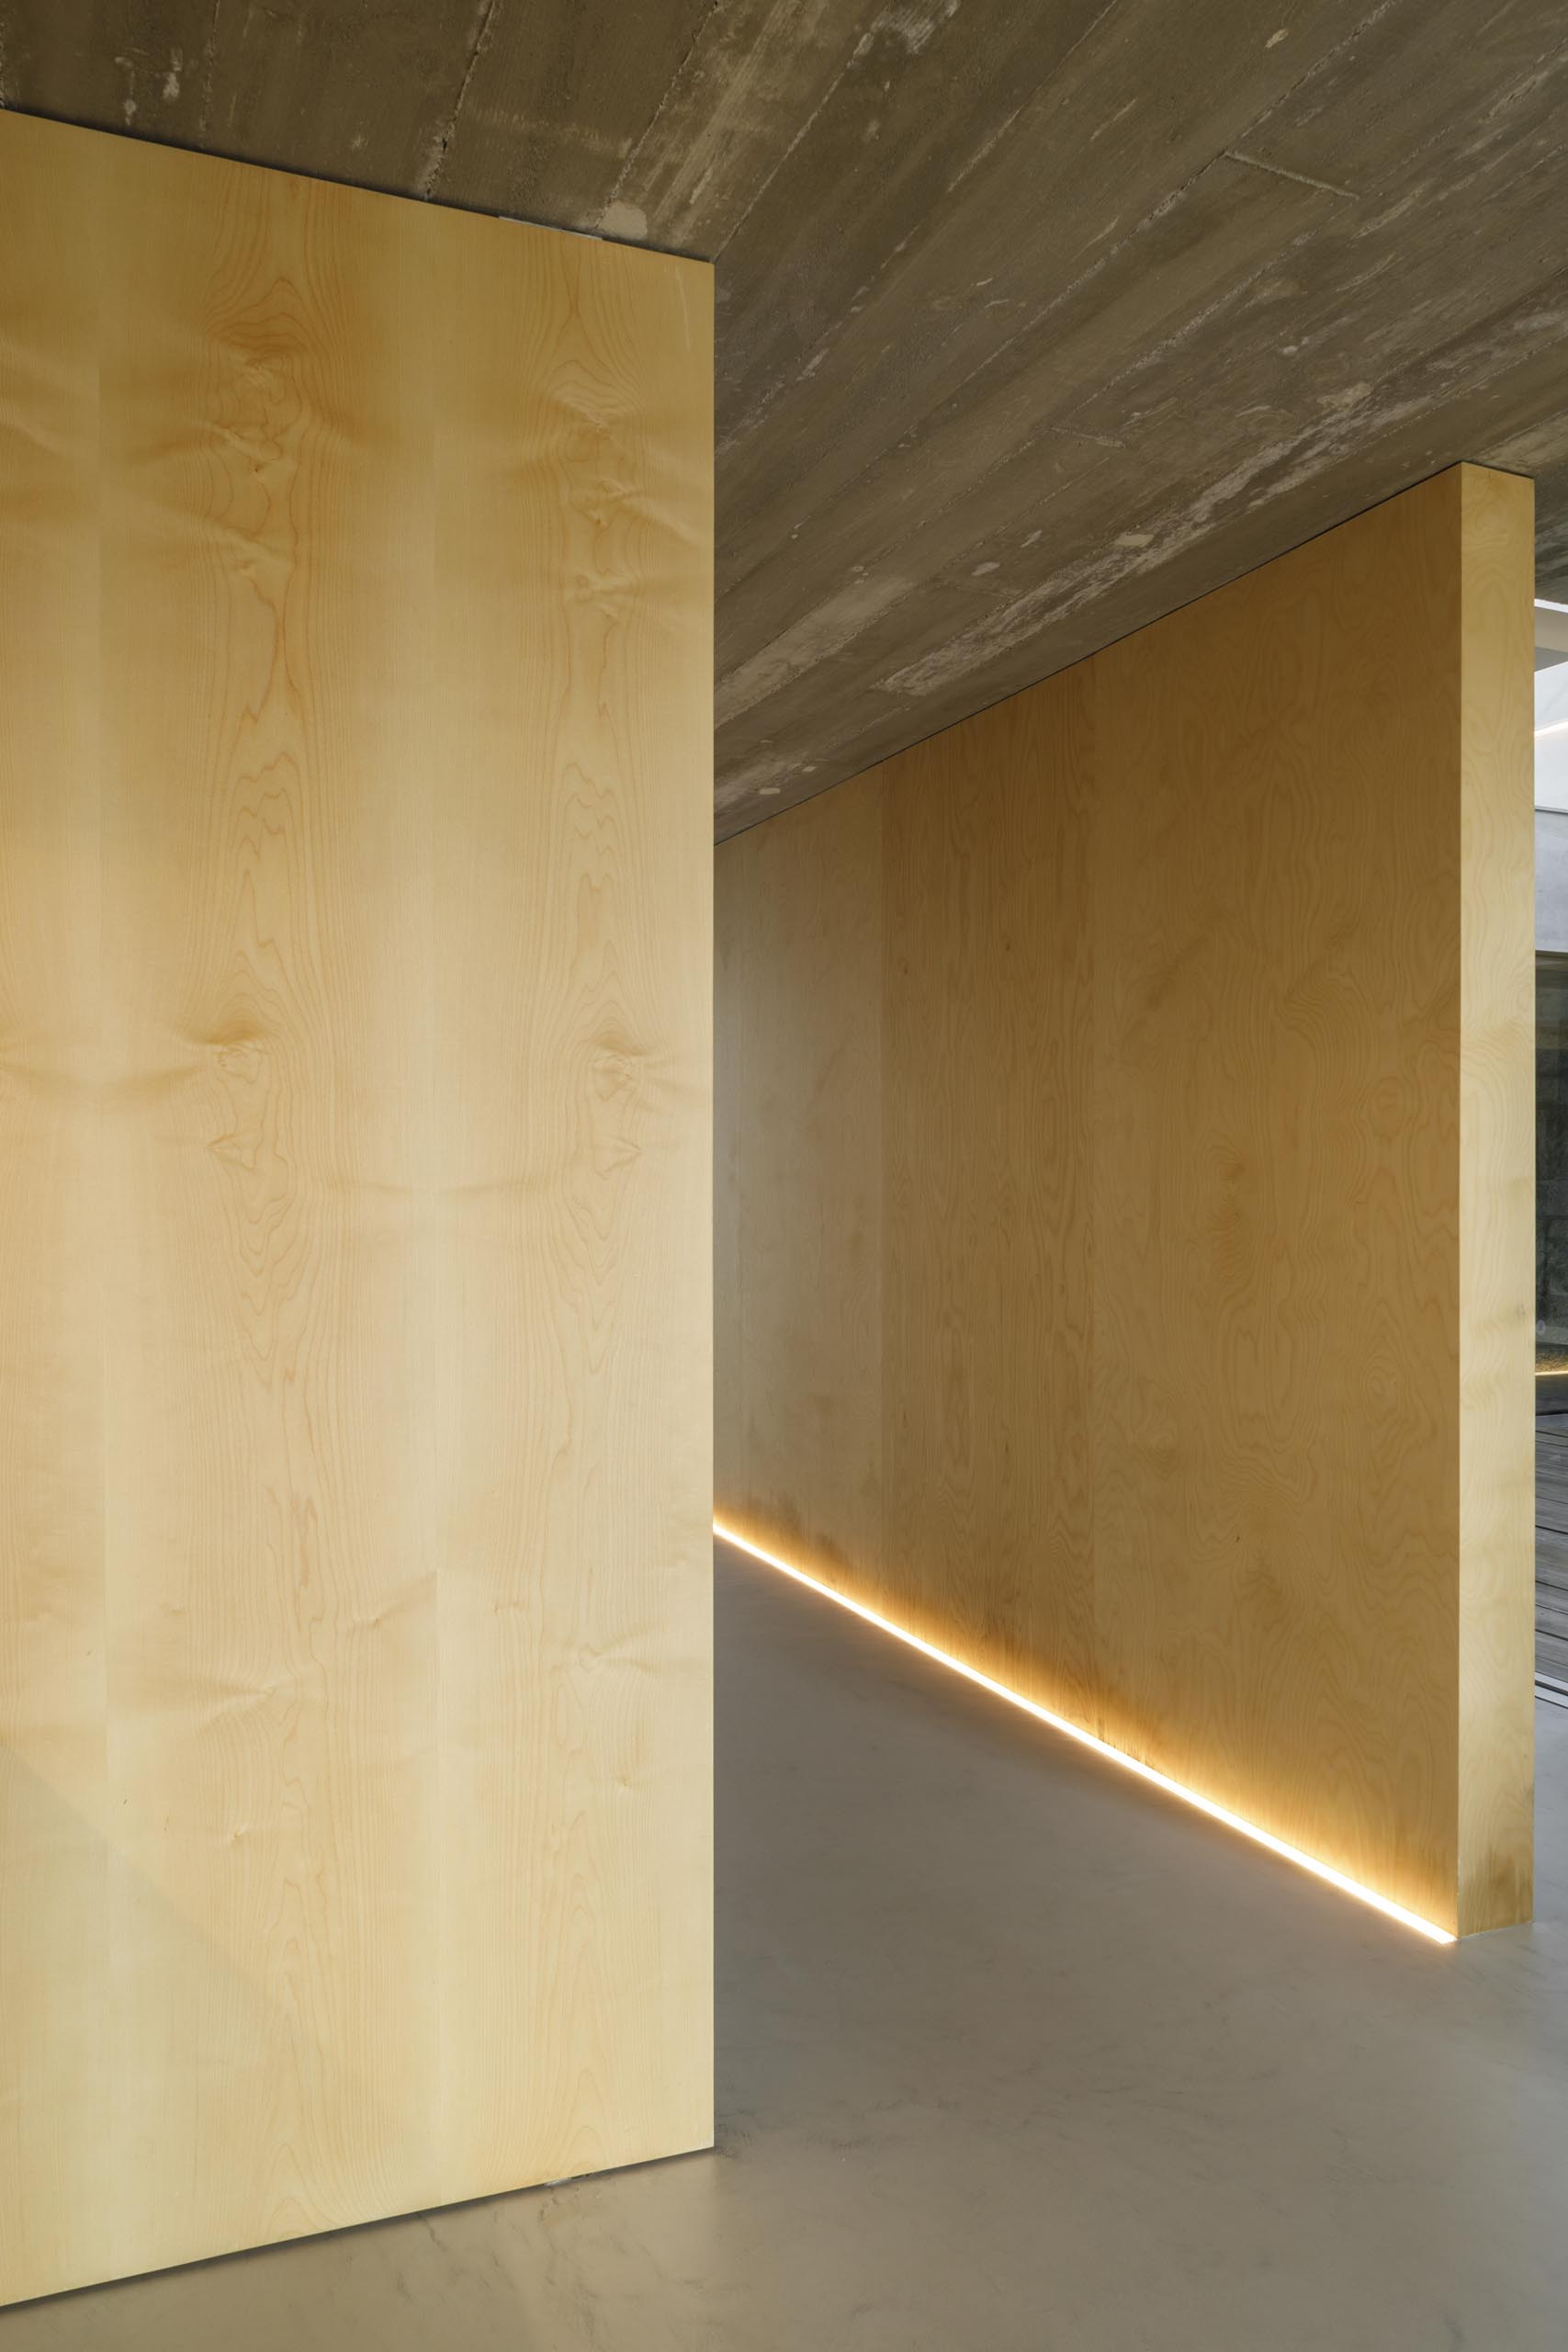 A hallway with wood walls is illuminated by LED lighting on the floor.